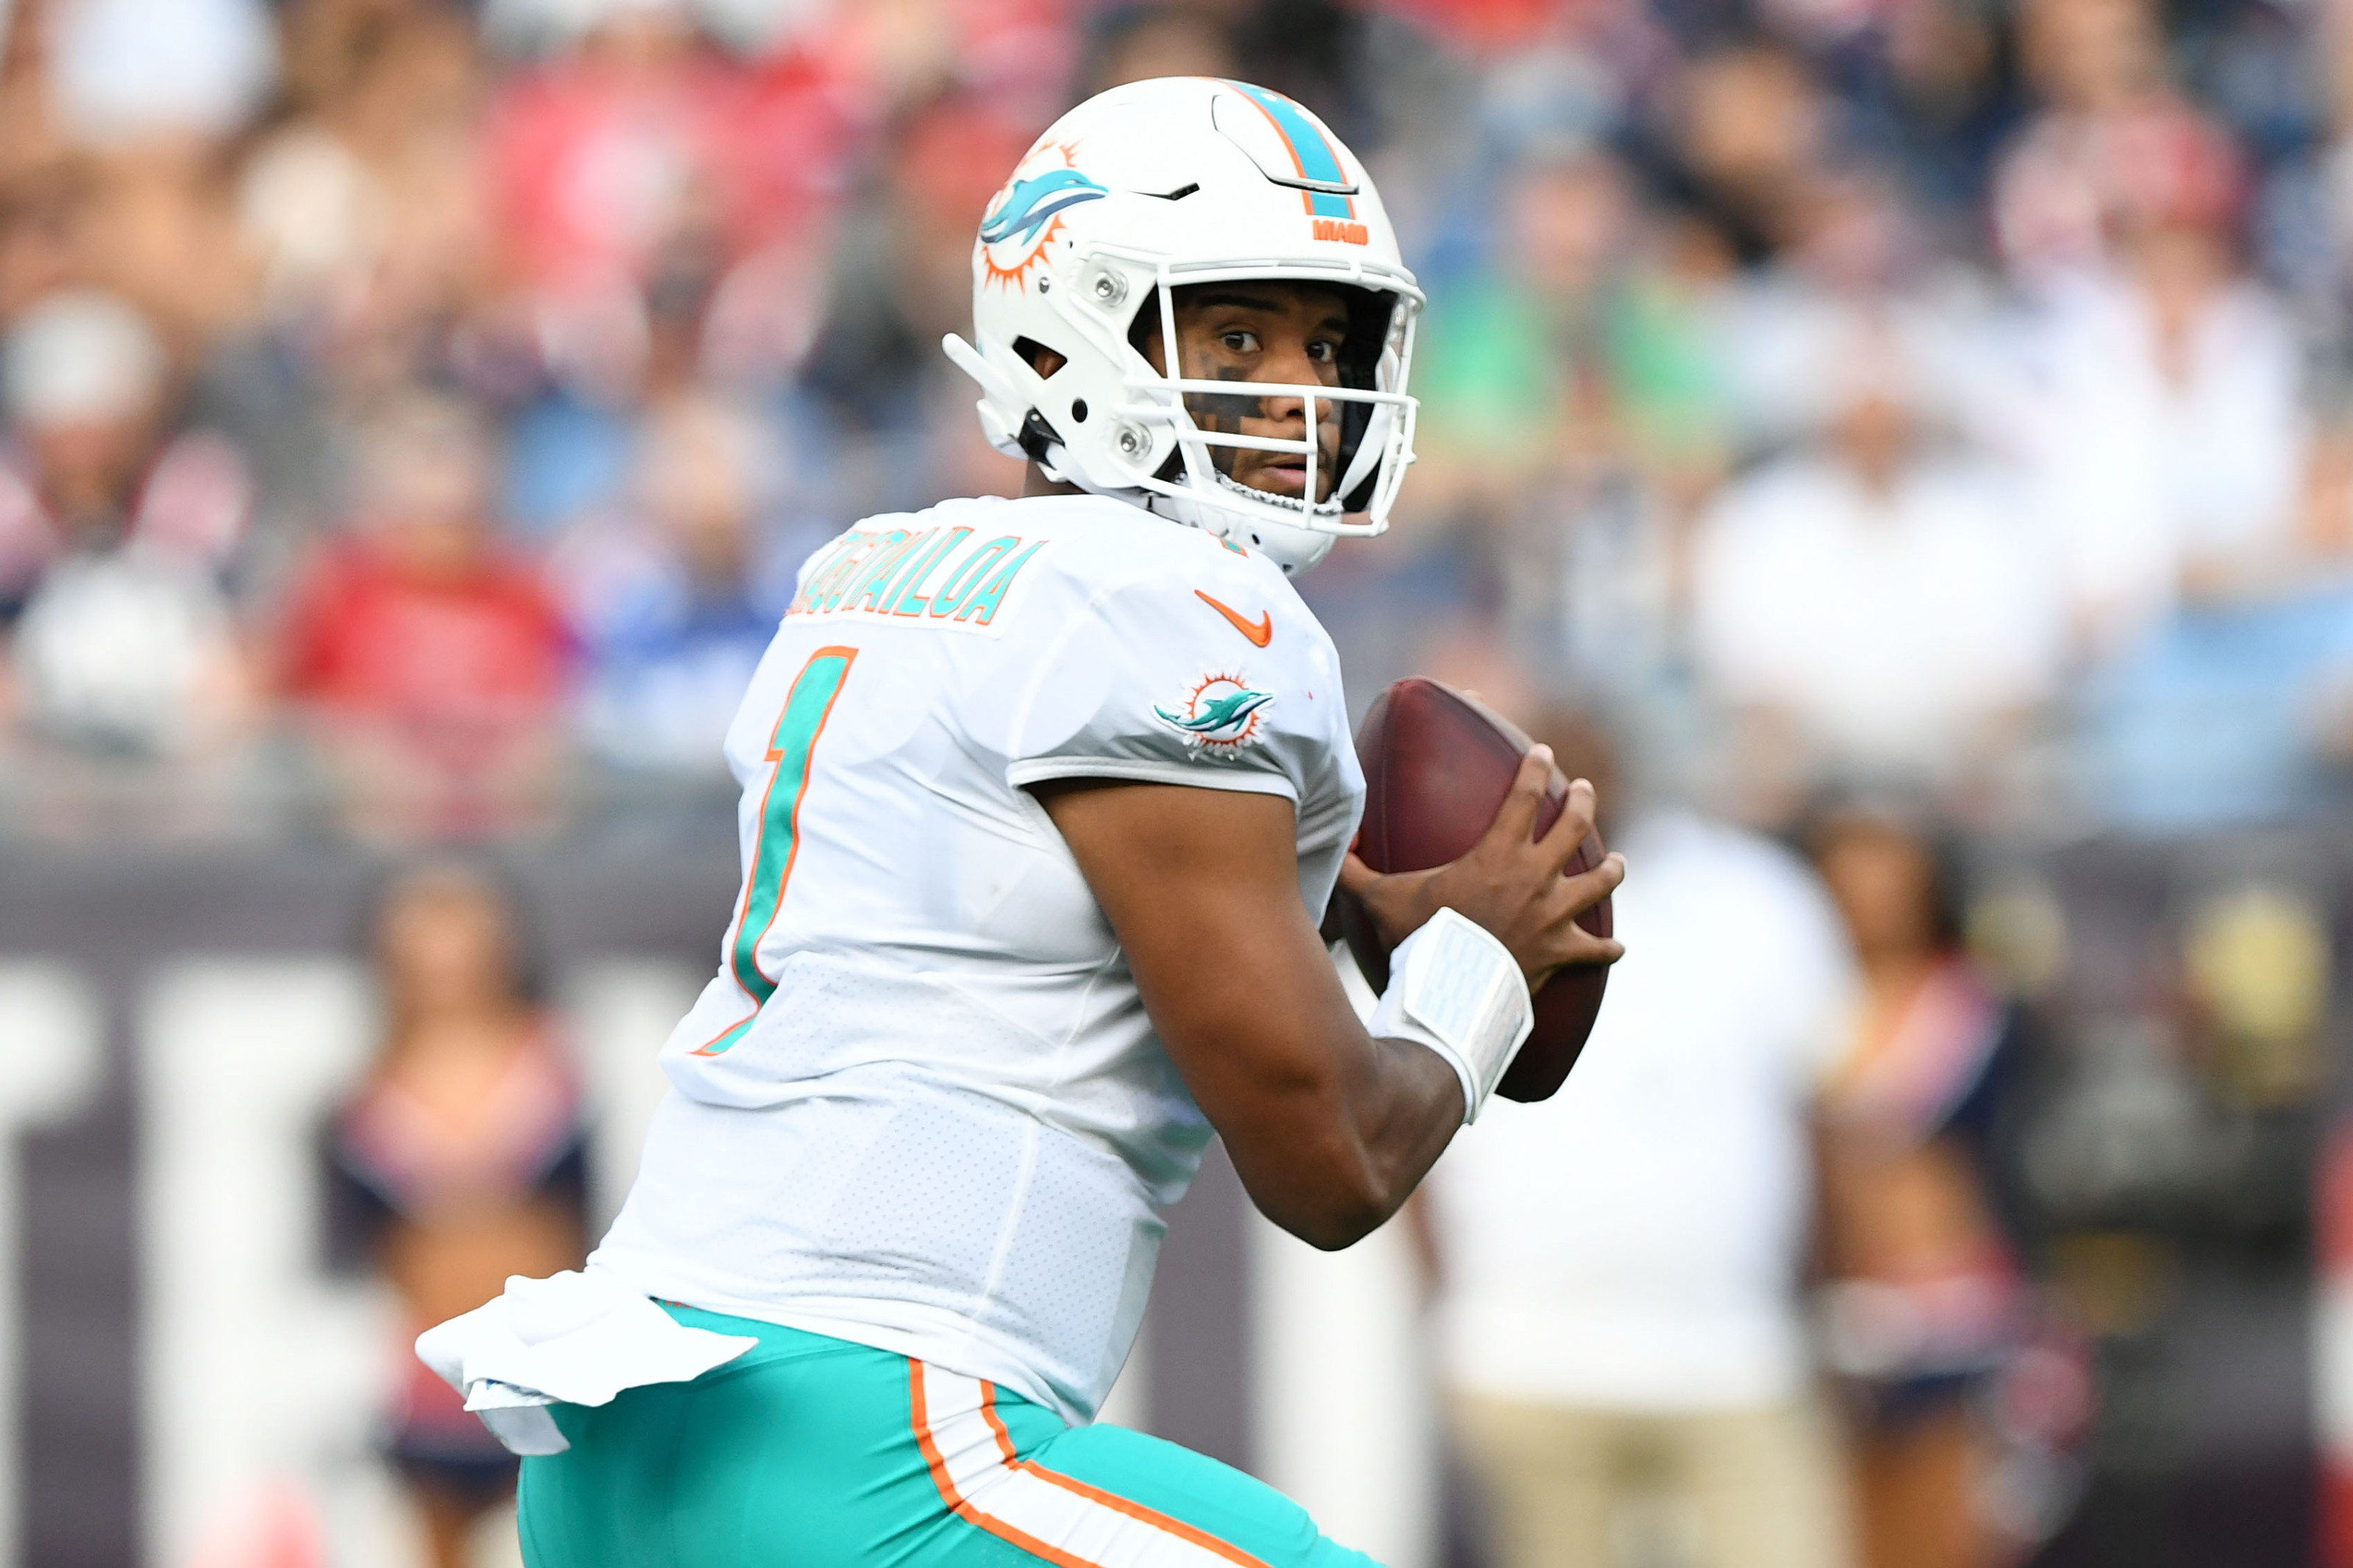 The Dolphins have to feel good about Tua Tagovailoa after win